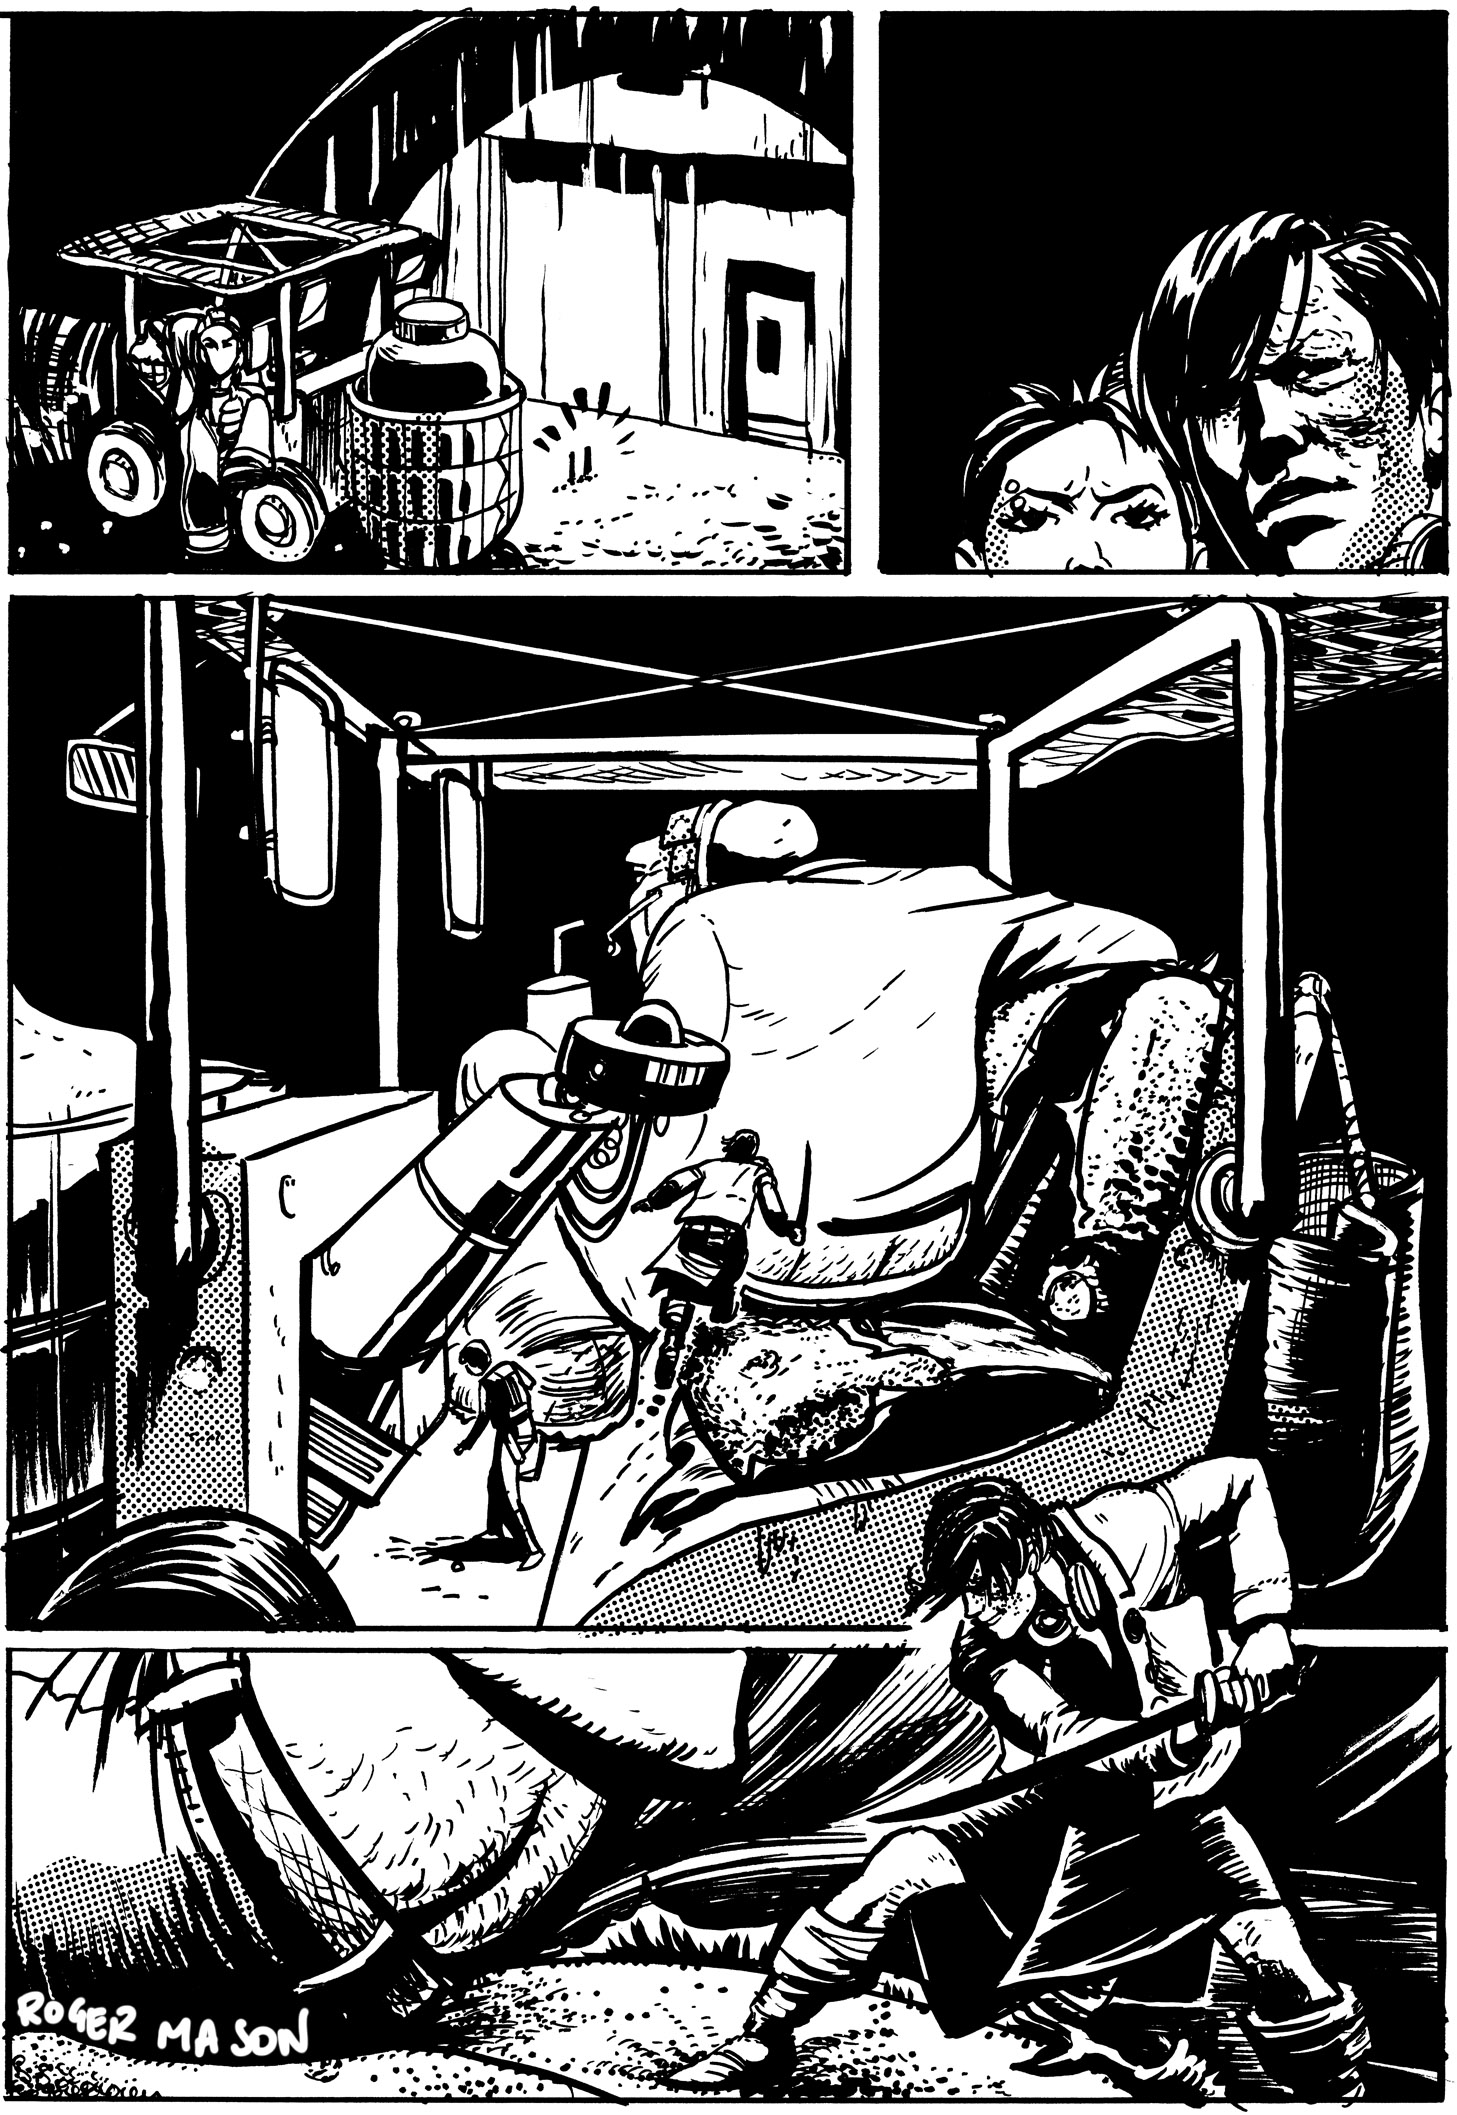 Page from The Mice book 3, an alien is attacked by the humans. Black and white indie comic art by Roger Mason